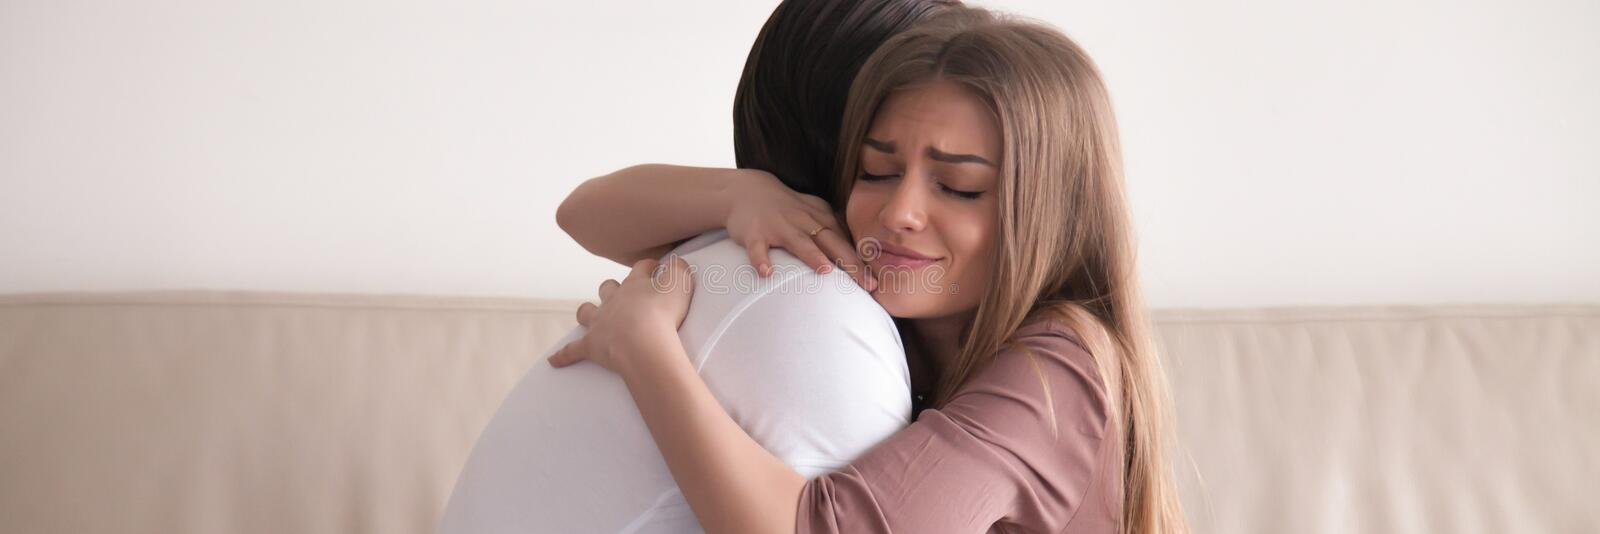 Horizontal photo couple sitting on couch hugging reconcile after quarrel royalty free stock photography